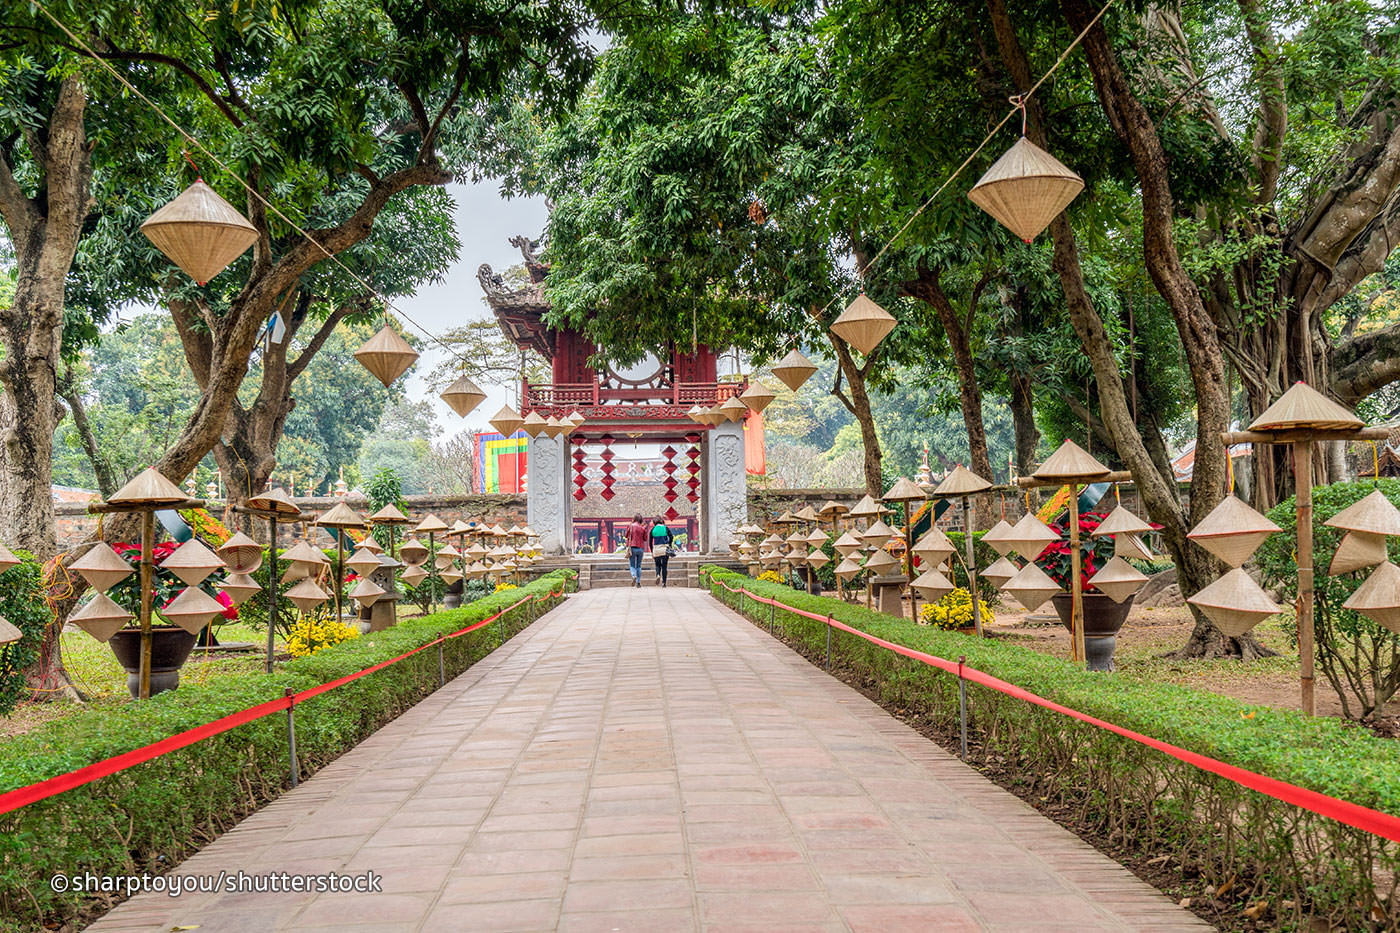 Discover a slice of Hanoi's culture at The Temple of Literature